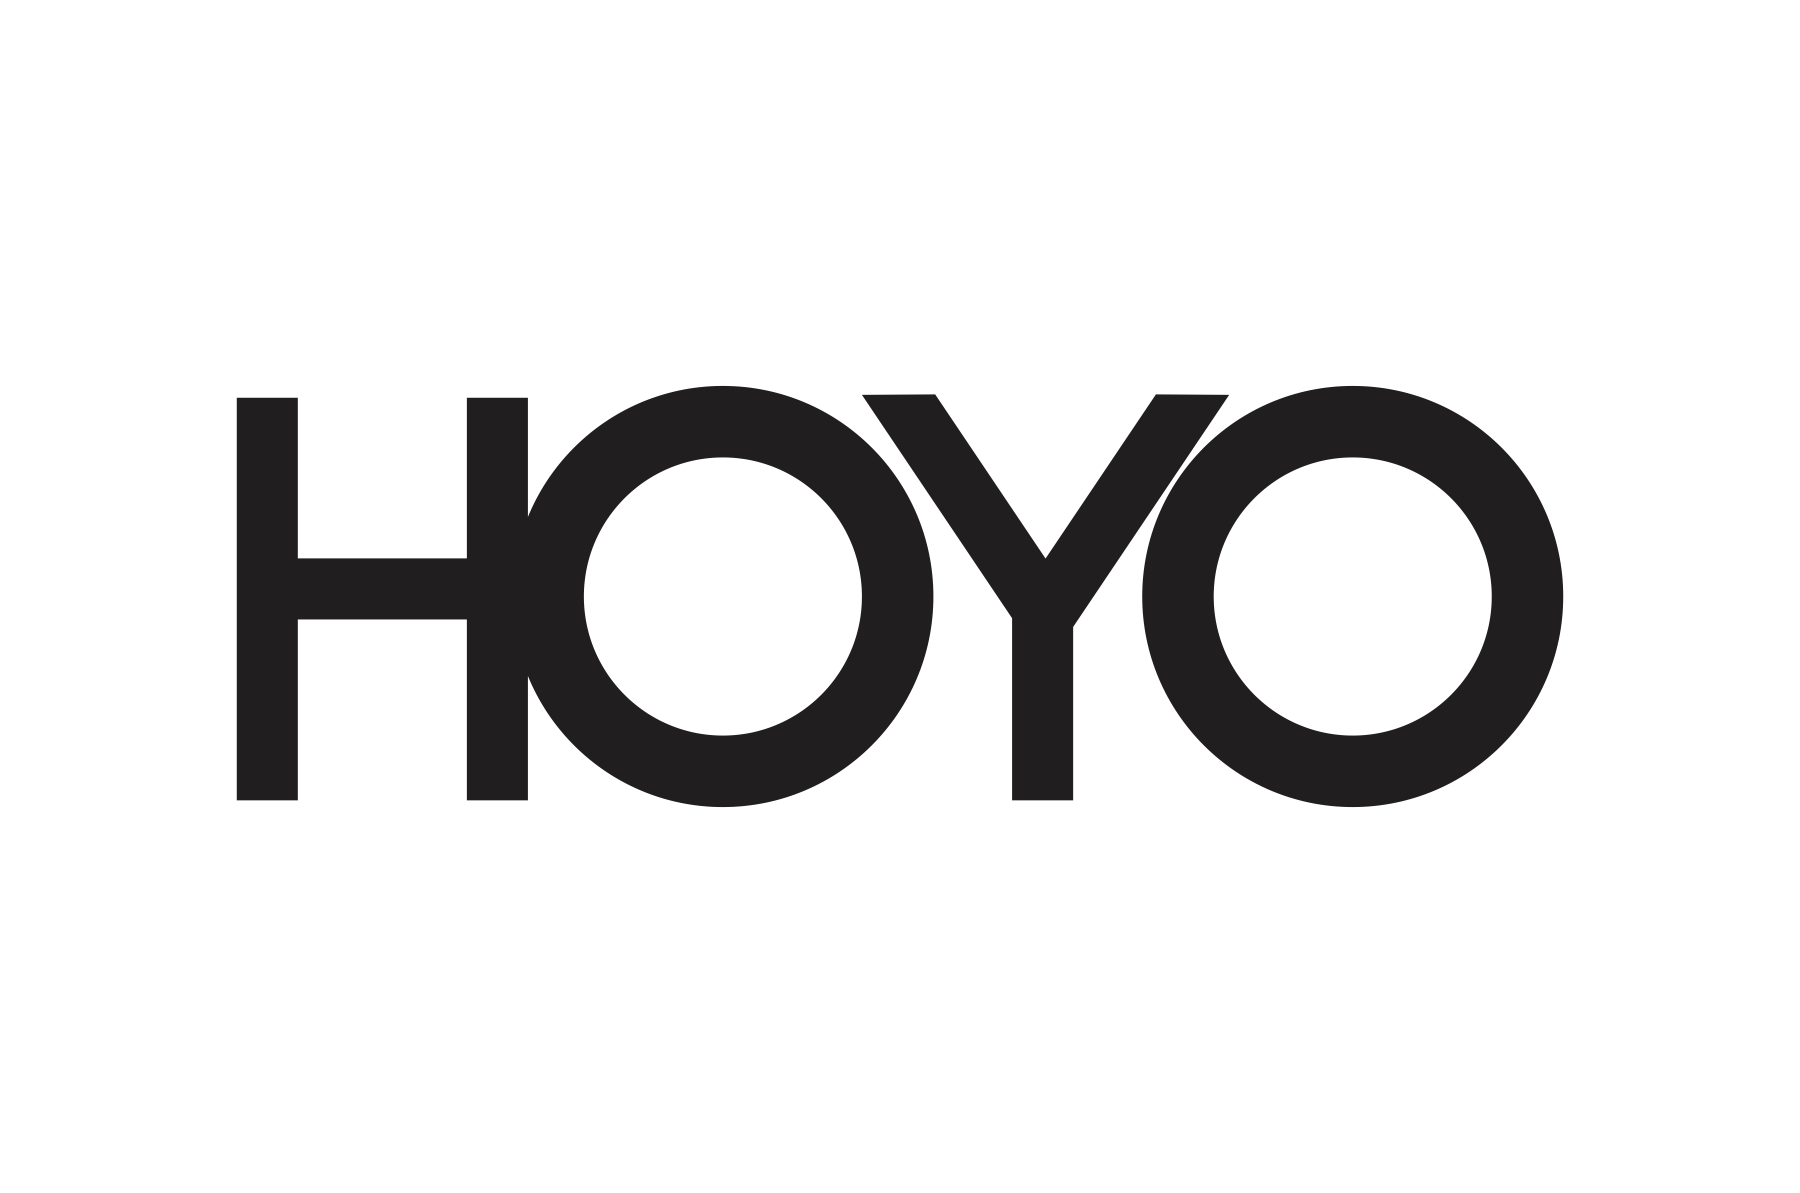 Hoyo : Brand Short Description Type Here.